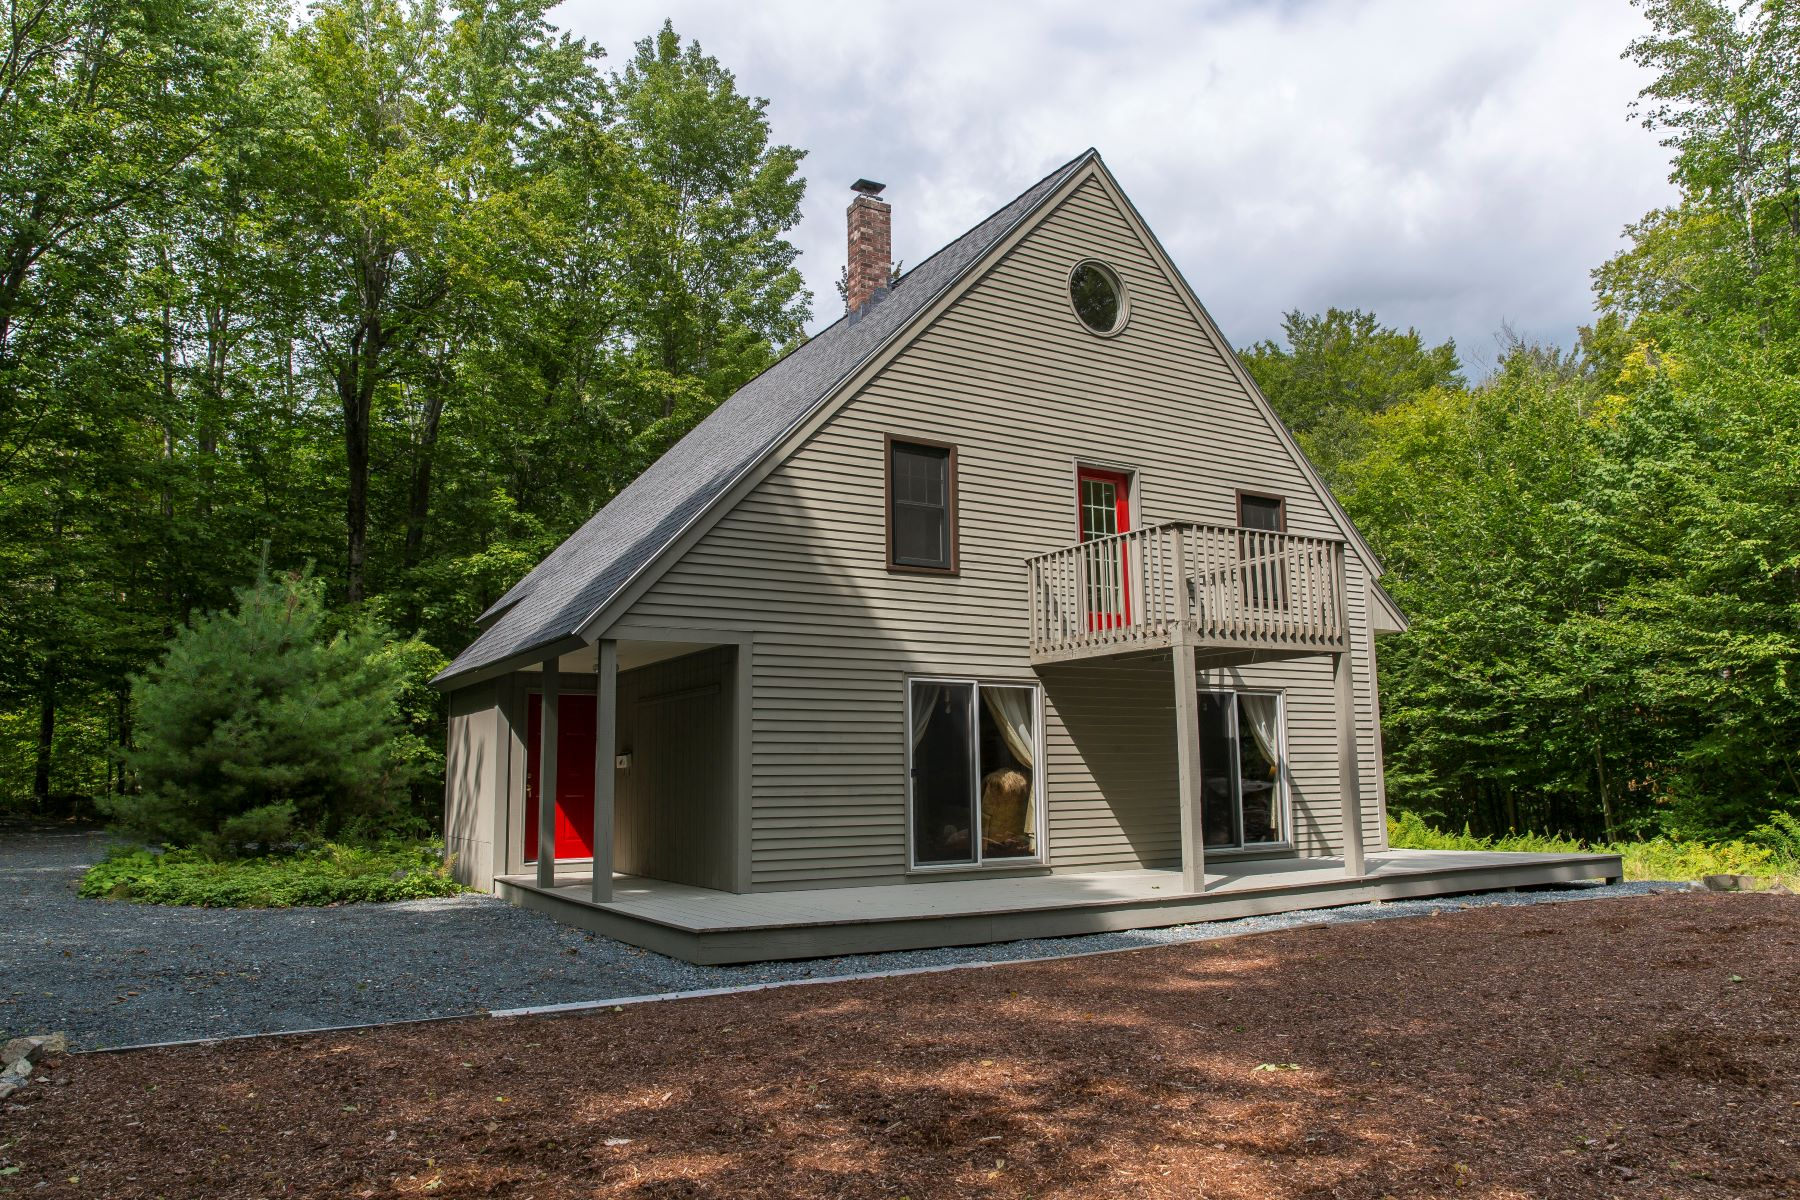 Single Family Homes for Active at 14 Bear Drive, Enfield 14 Bear Dr Enfield, New Hampshire 03748 United States